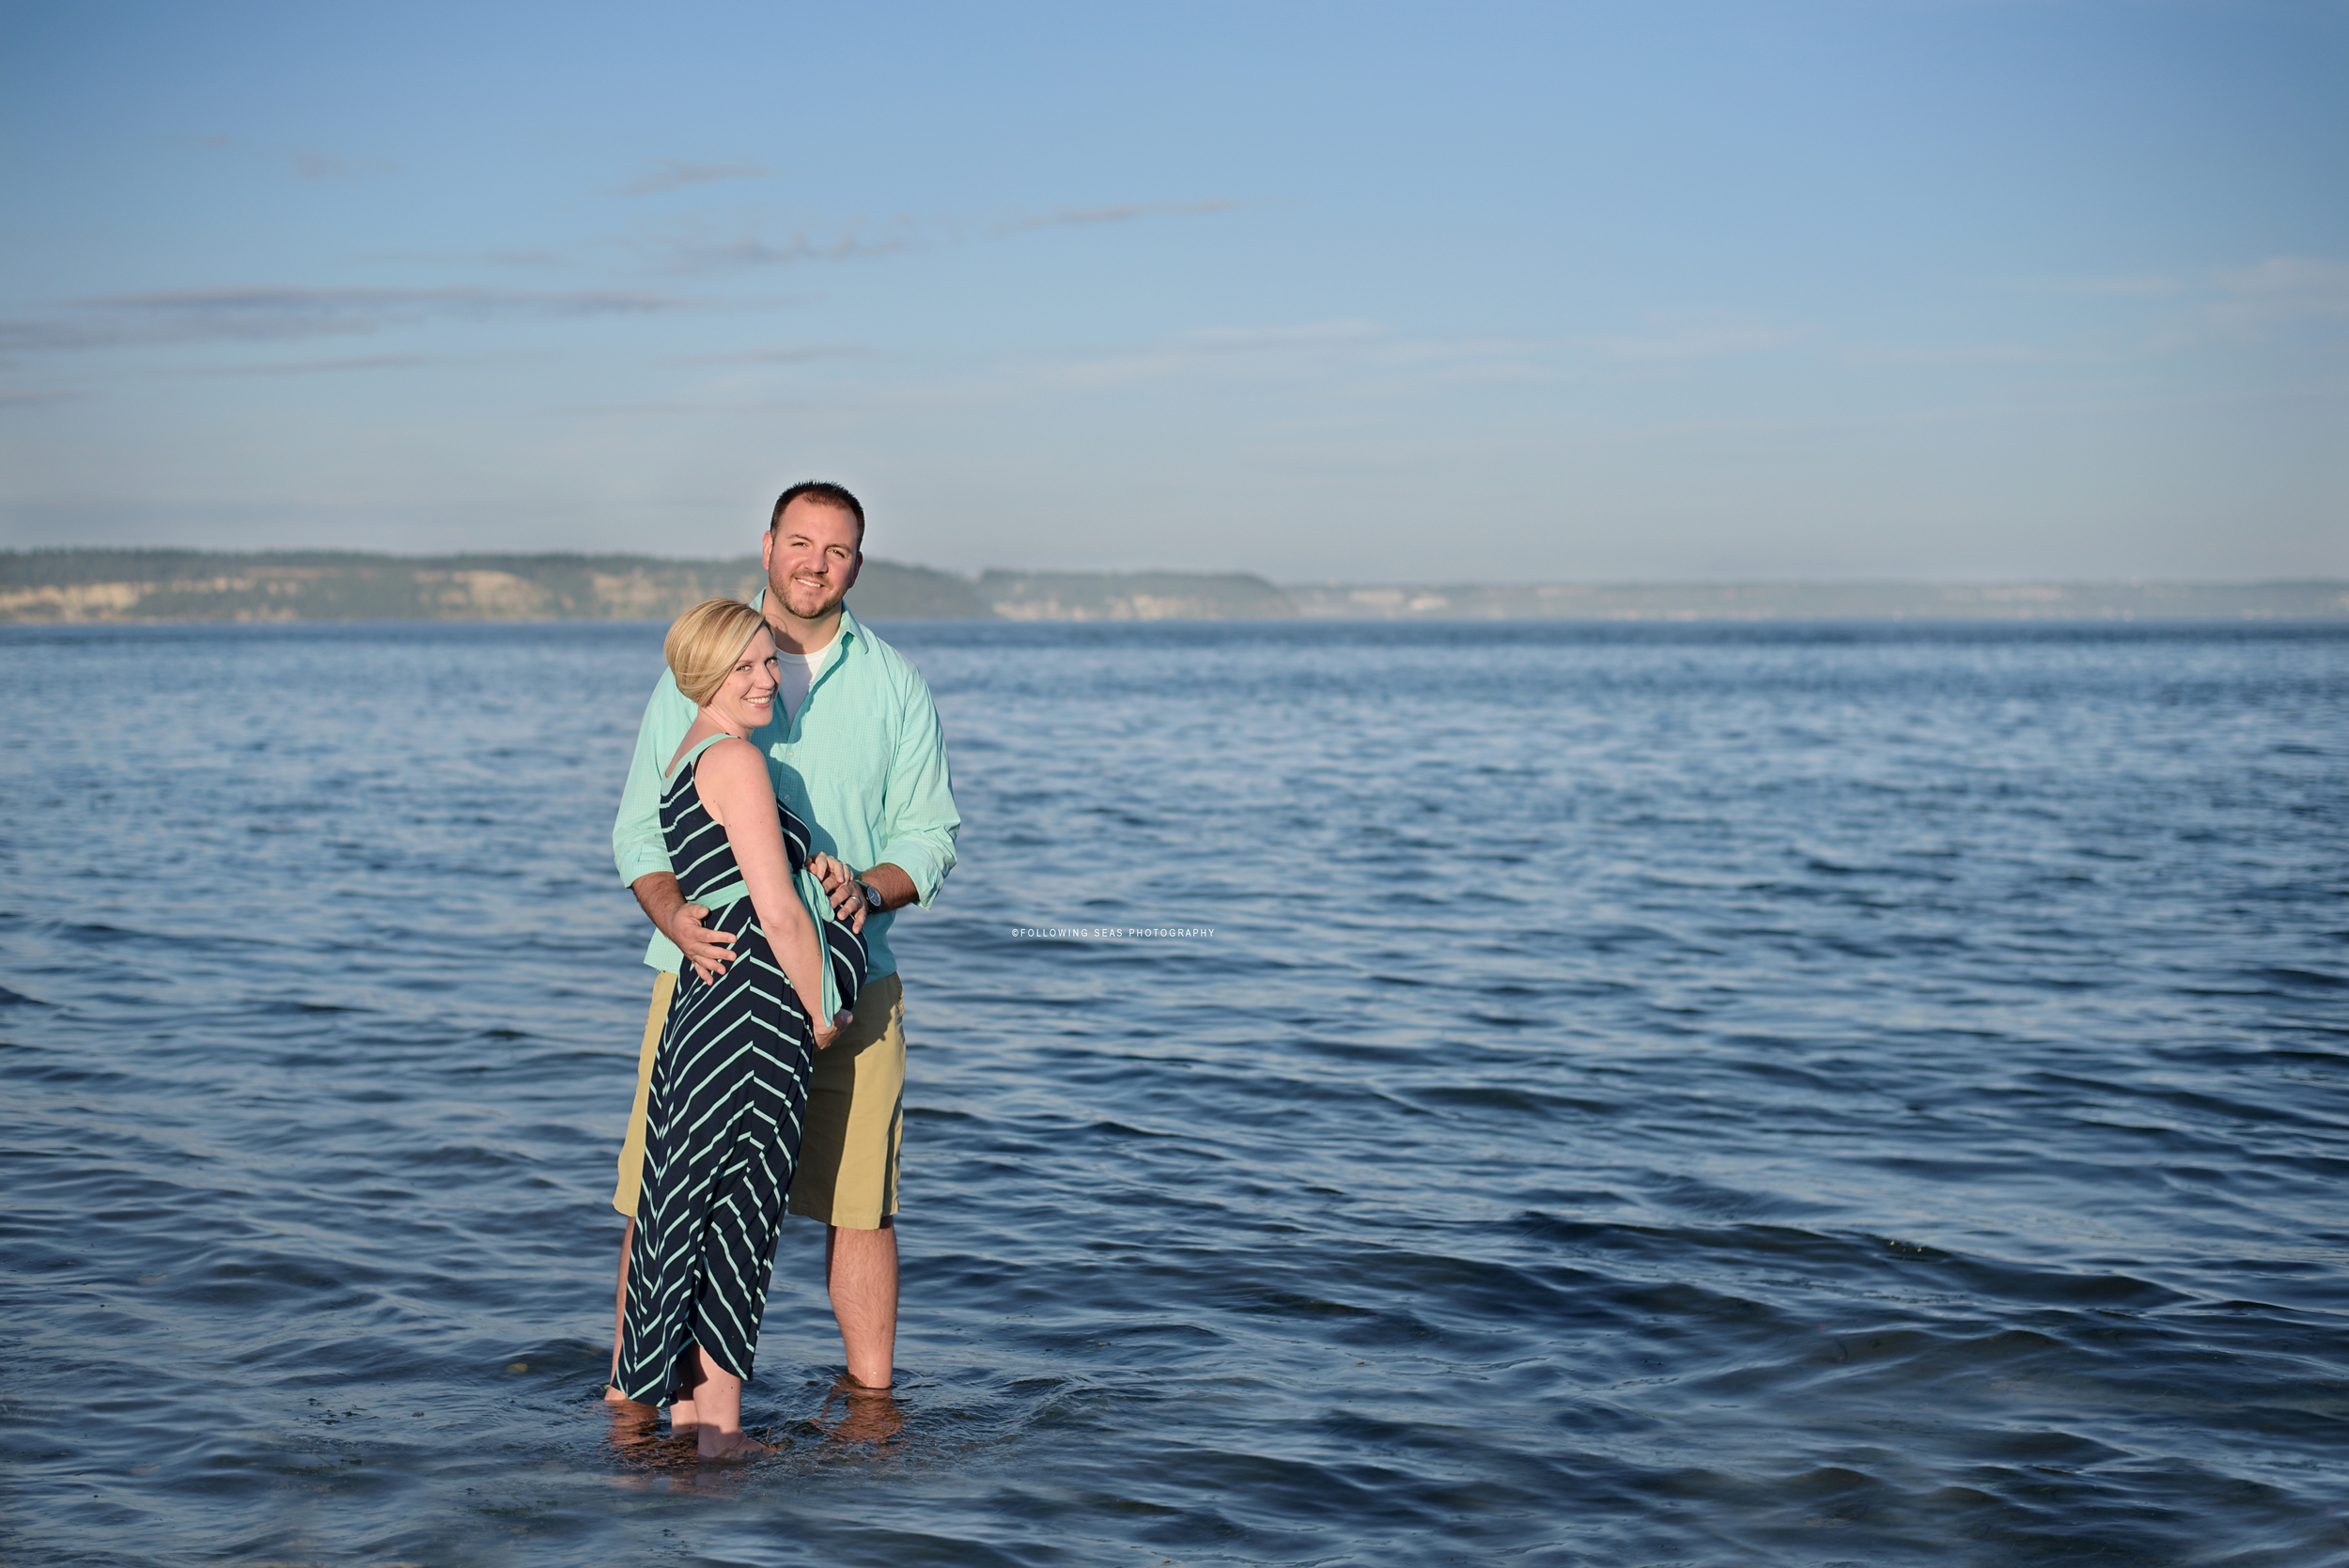 Silverdale-Maternity-Photographer-Following-Seas-Photography-3188.jpg